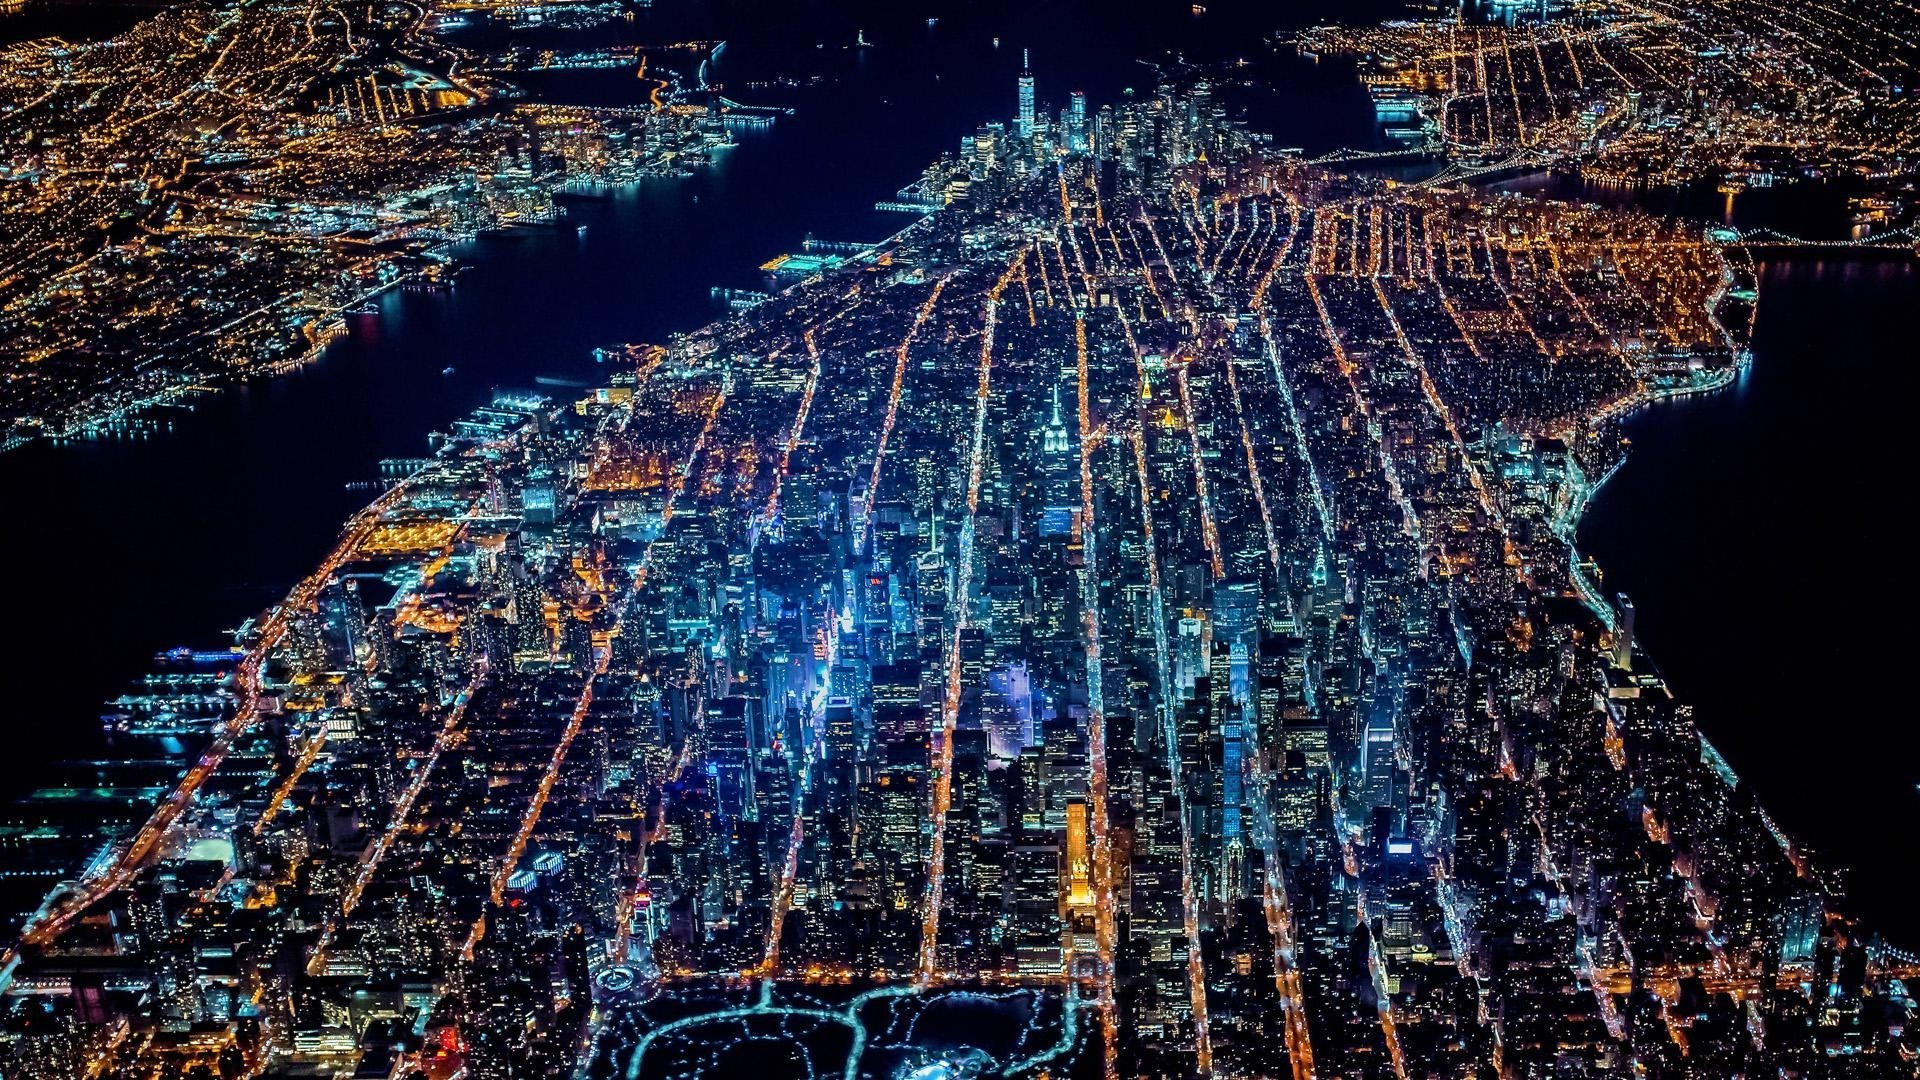 Samsung Wallpaper Hd 1080p 2017 New York At Night Wallpaper 67 Images